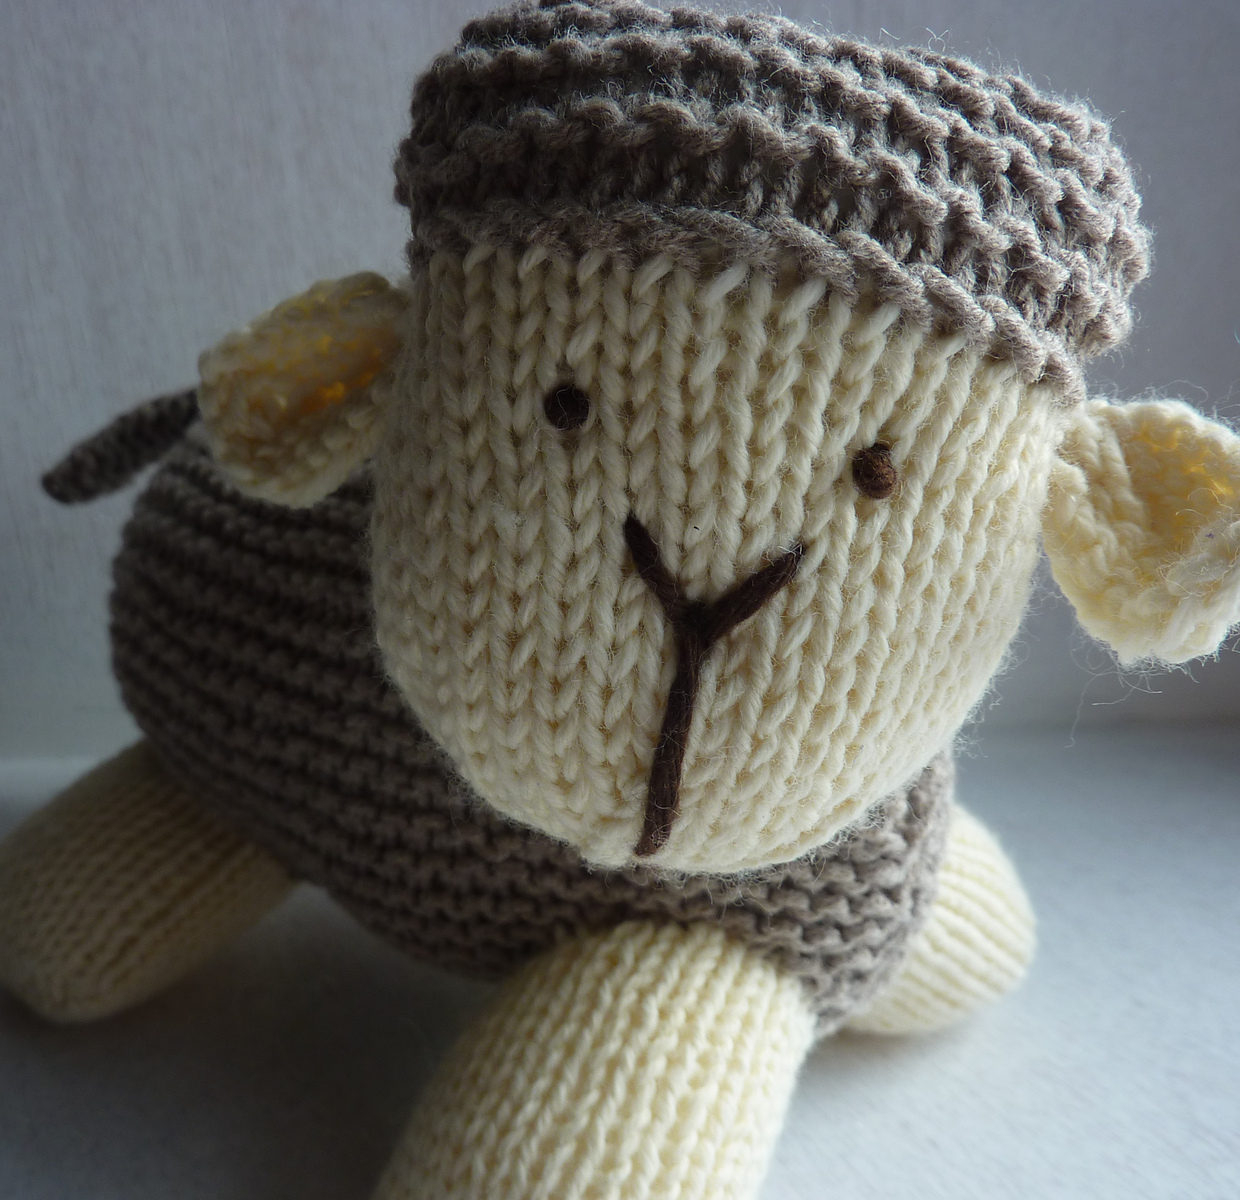 The Sweetest Crochet Lamb Patterns for Free Sheep And Lamb Knitting Patterns In The Loop Knitting